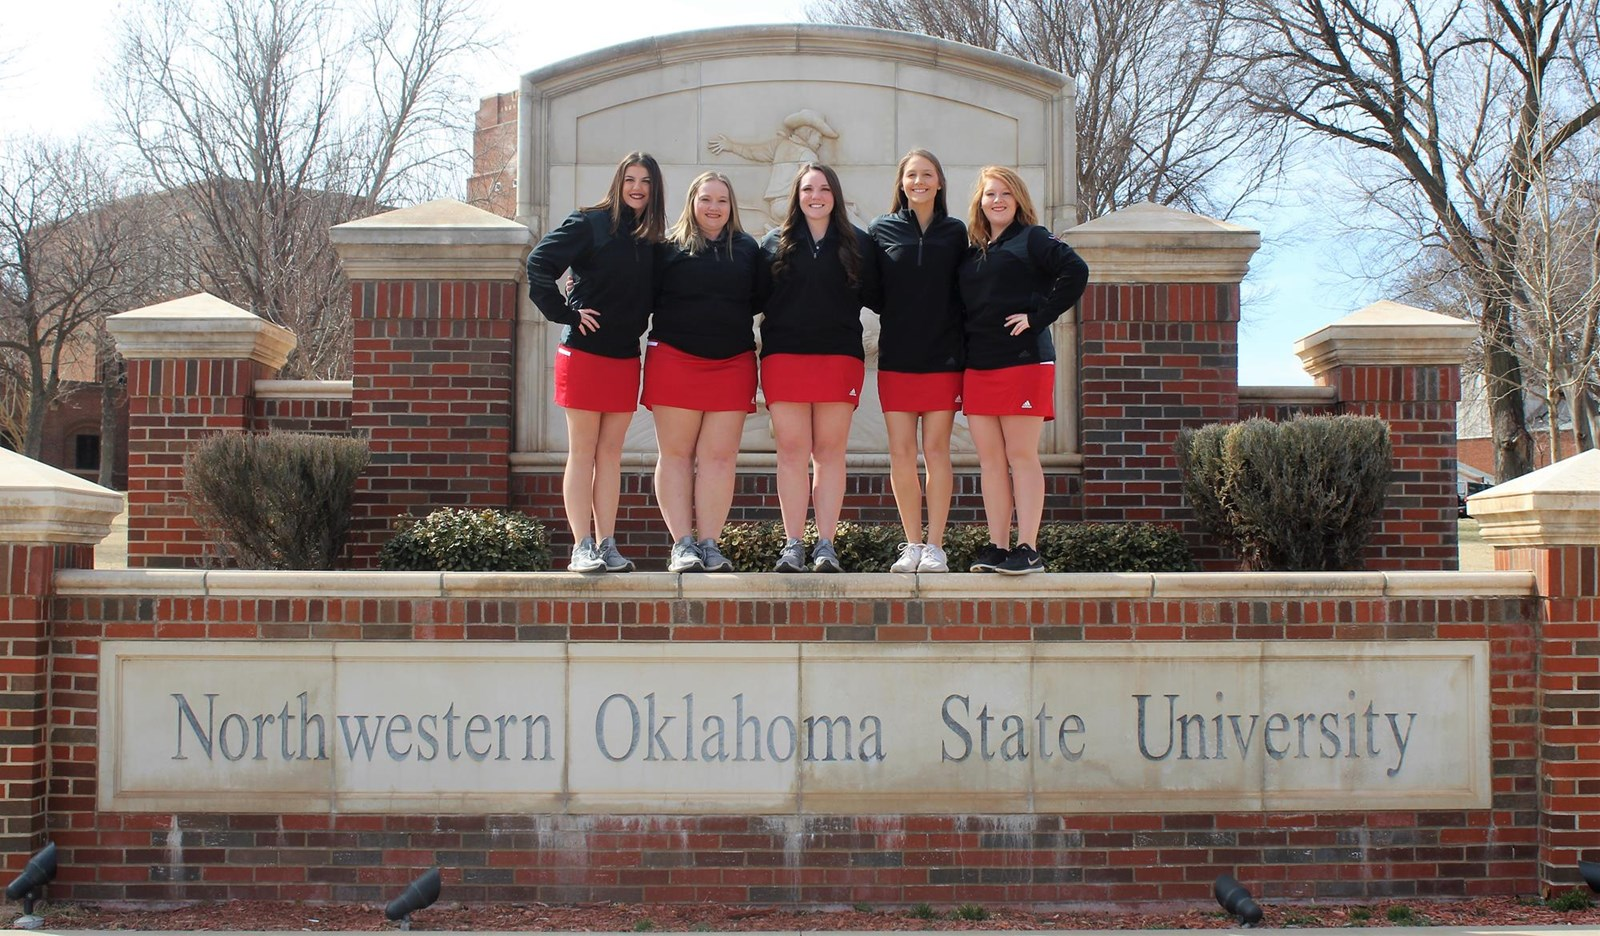 Northwestern Oklahoma State University >> 2018 19 Women S Golf Roster Northwestern Oklahoma State